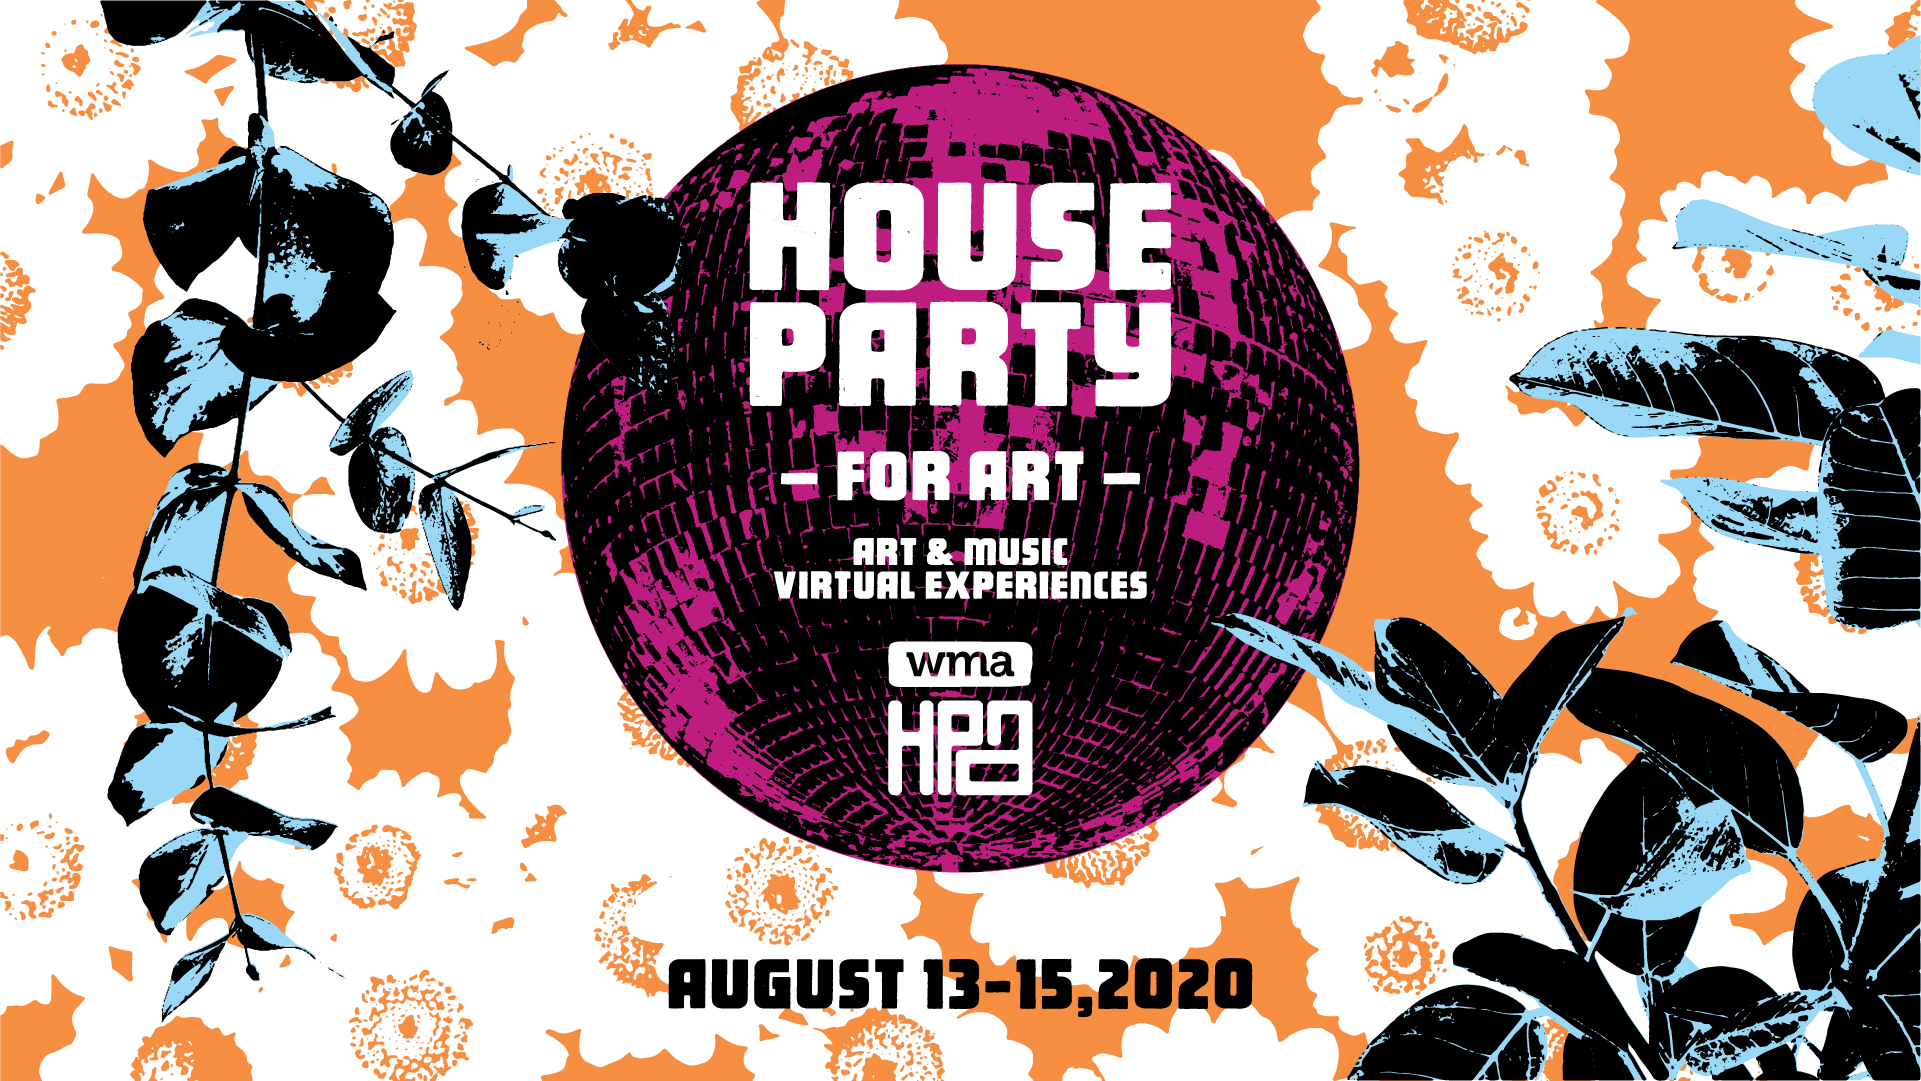 WMA's House Party for Art will celebrate art, music and tech